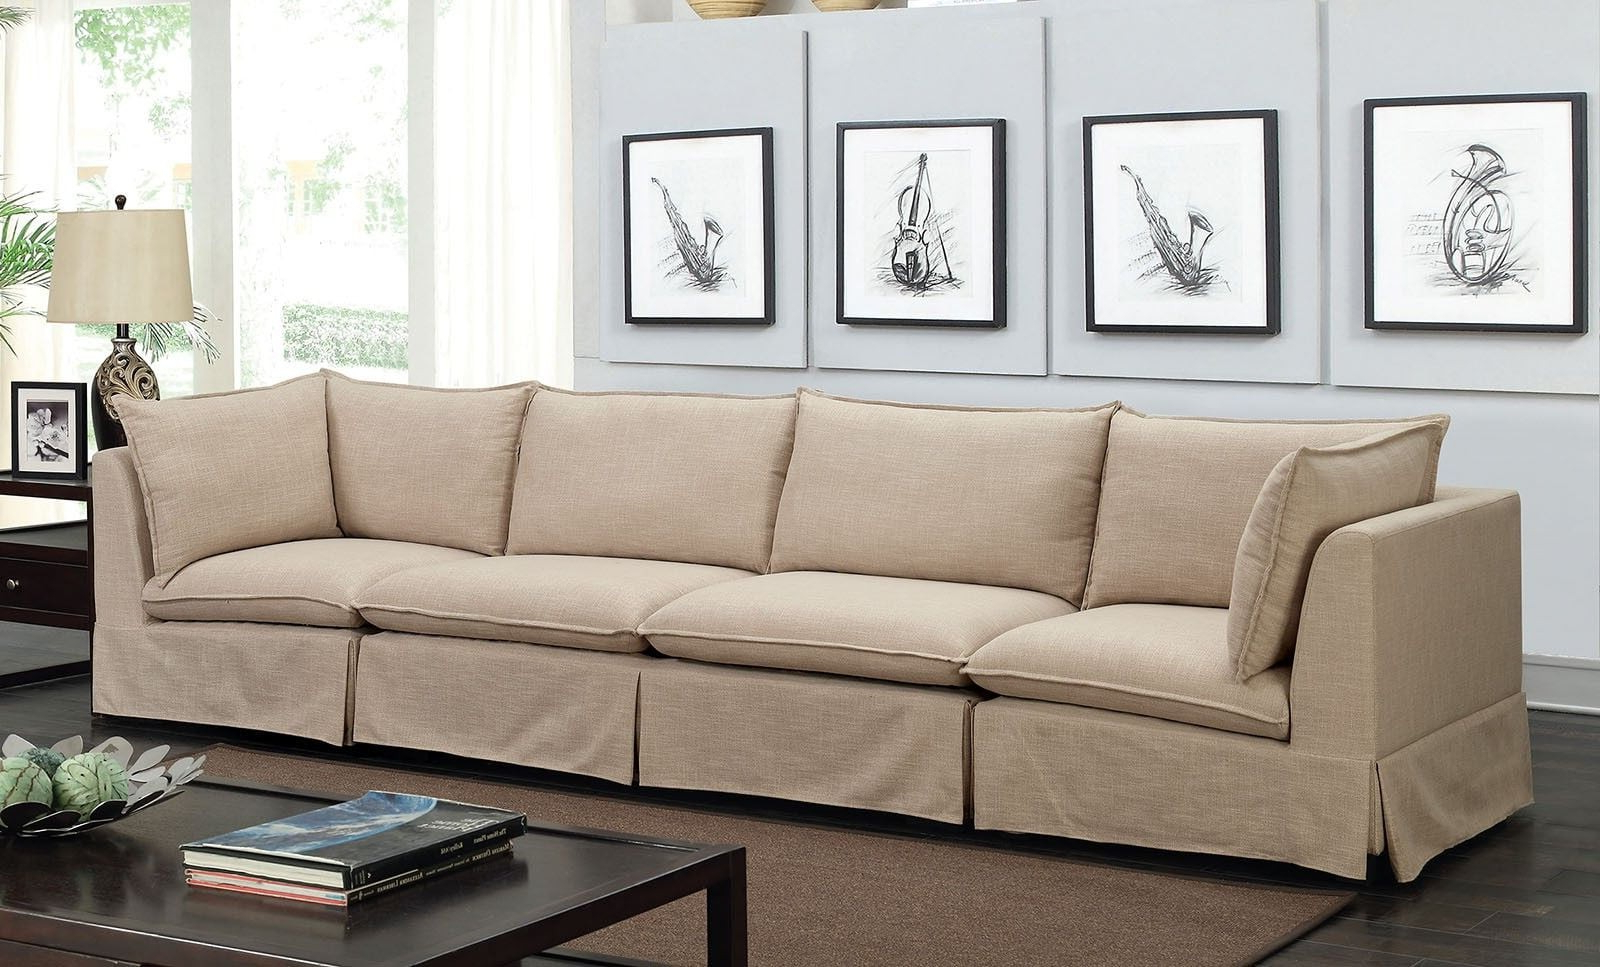 Joelle 3 Piece Beige Sectional From Furniture Of America (Gallery 7 of 20)